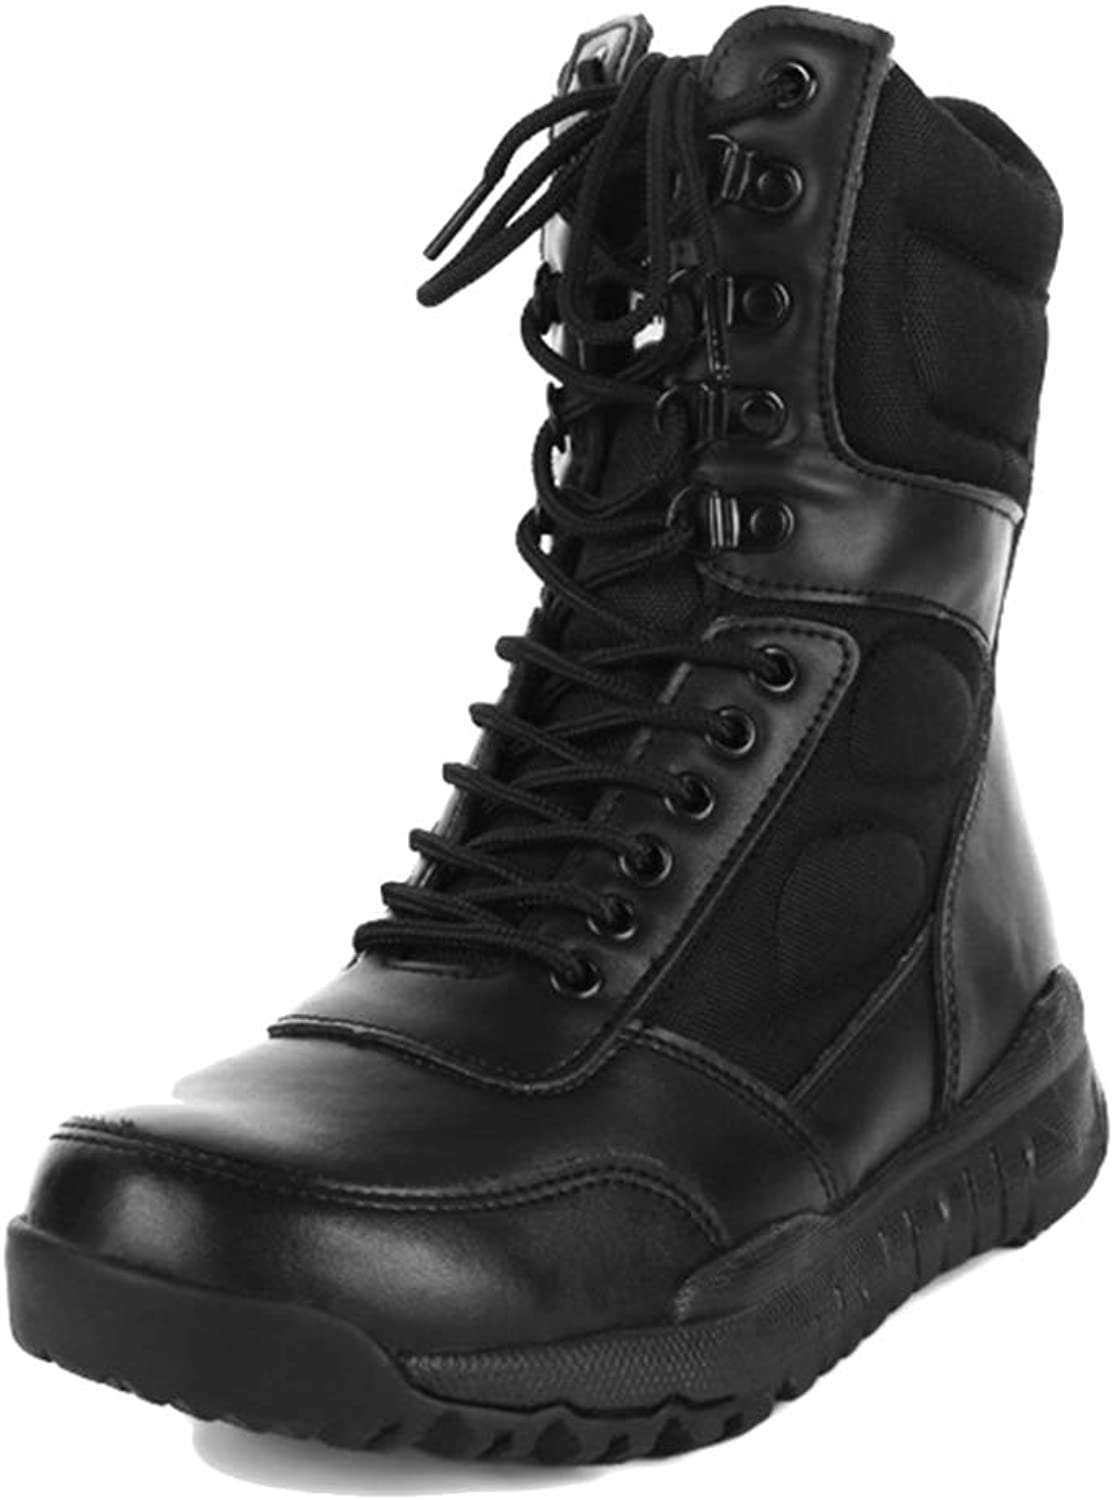 Souy Mens Leather High Tops Combat Boots Outdoor Tactical Boots For Riding Lace Ups Amry Military Boots Hiking Camping Desert Boots